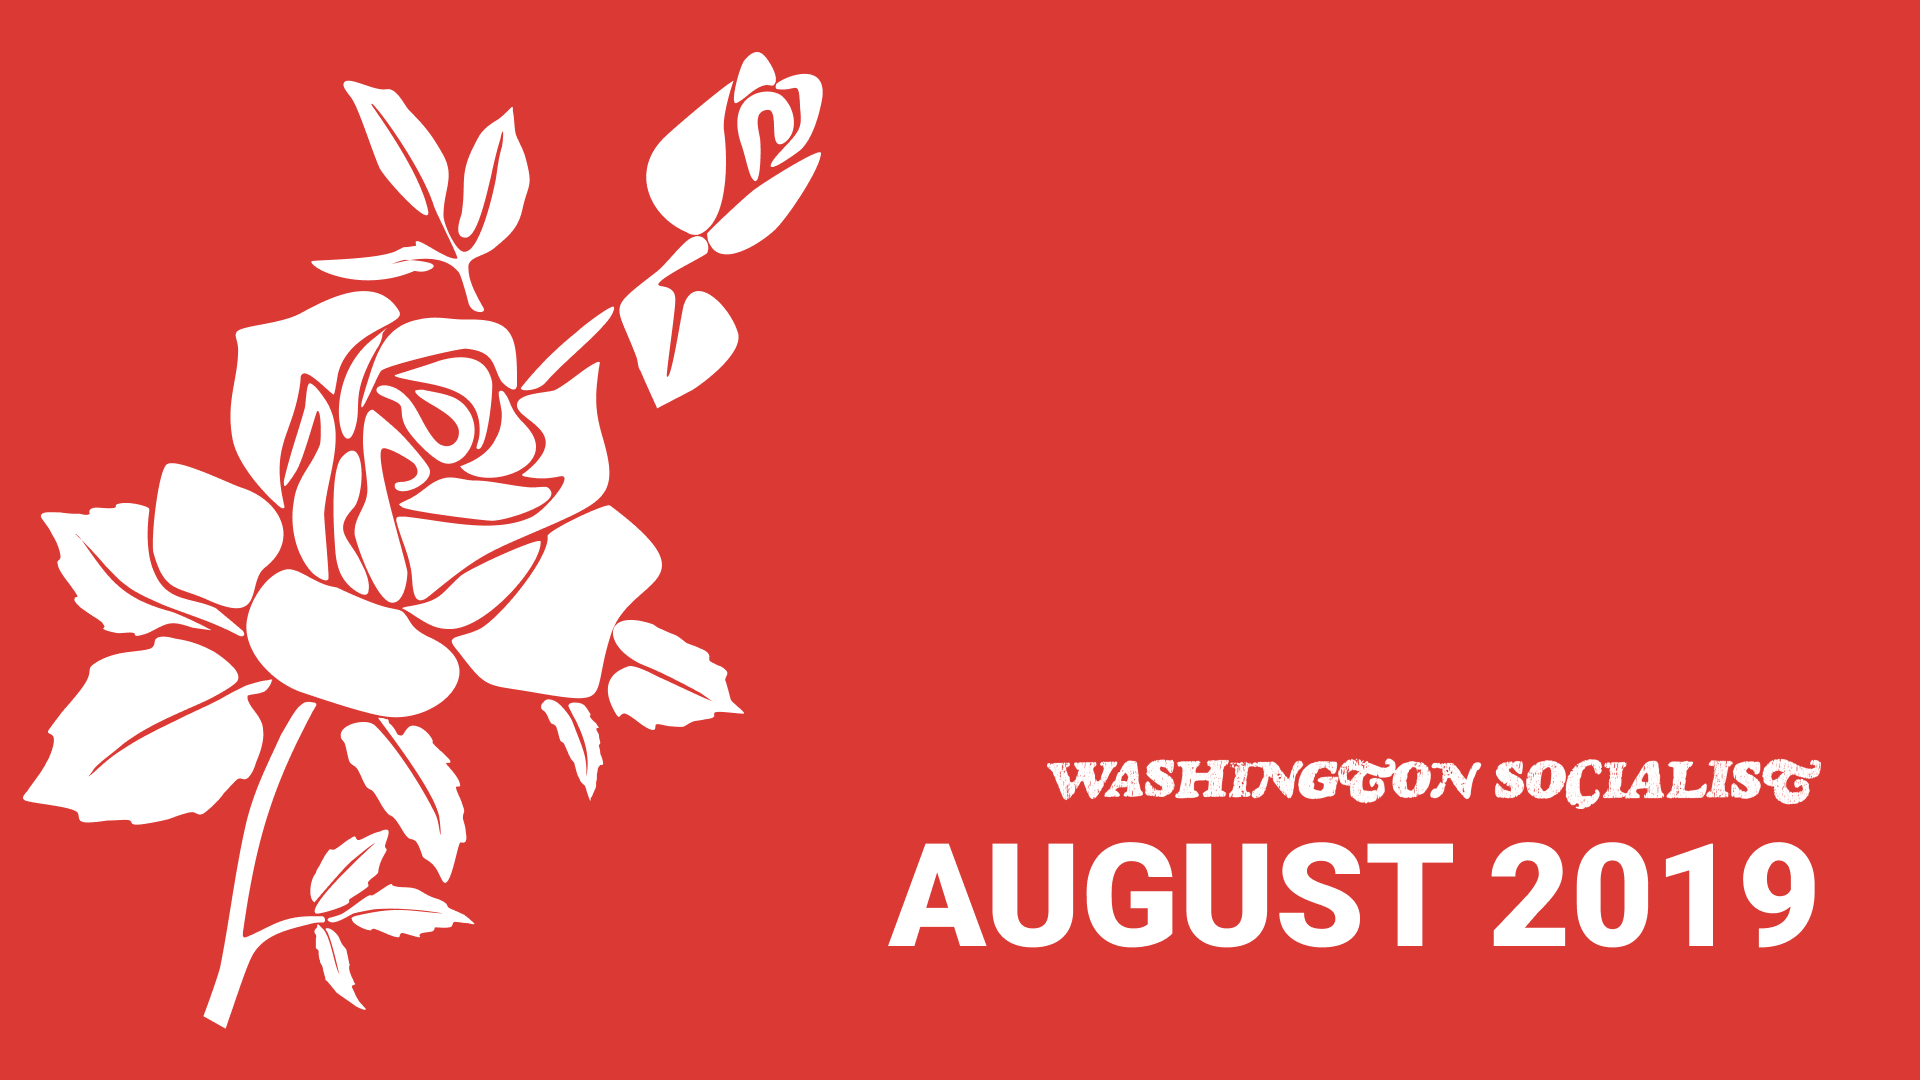 Washington Socialist Cover, August 2019